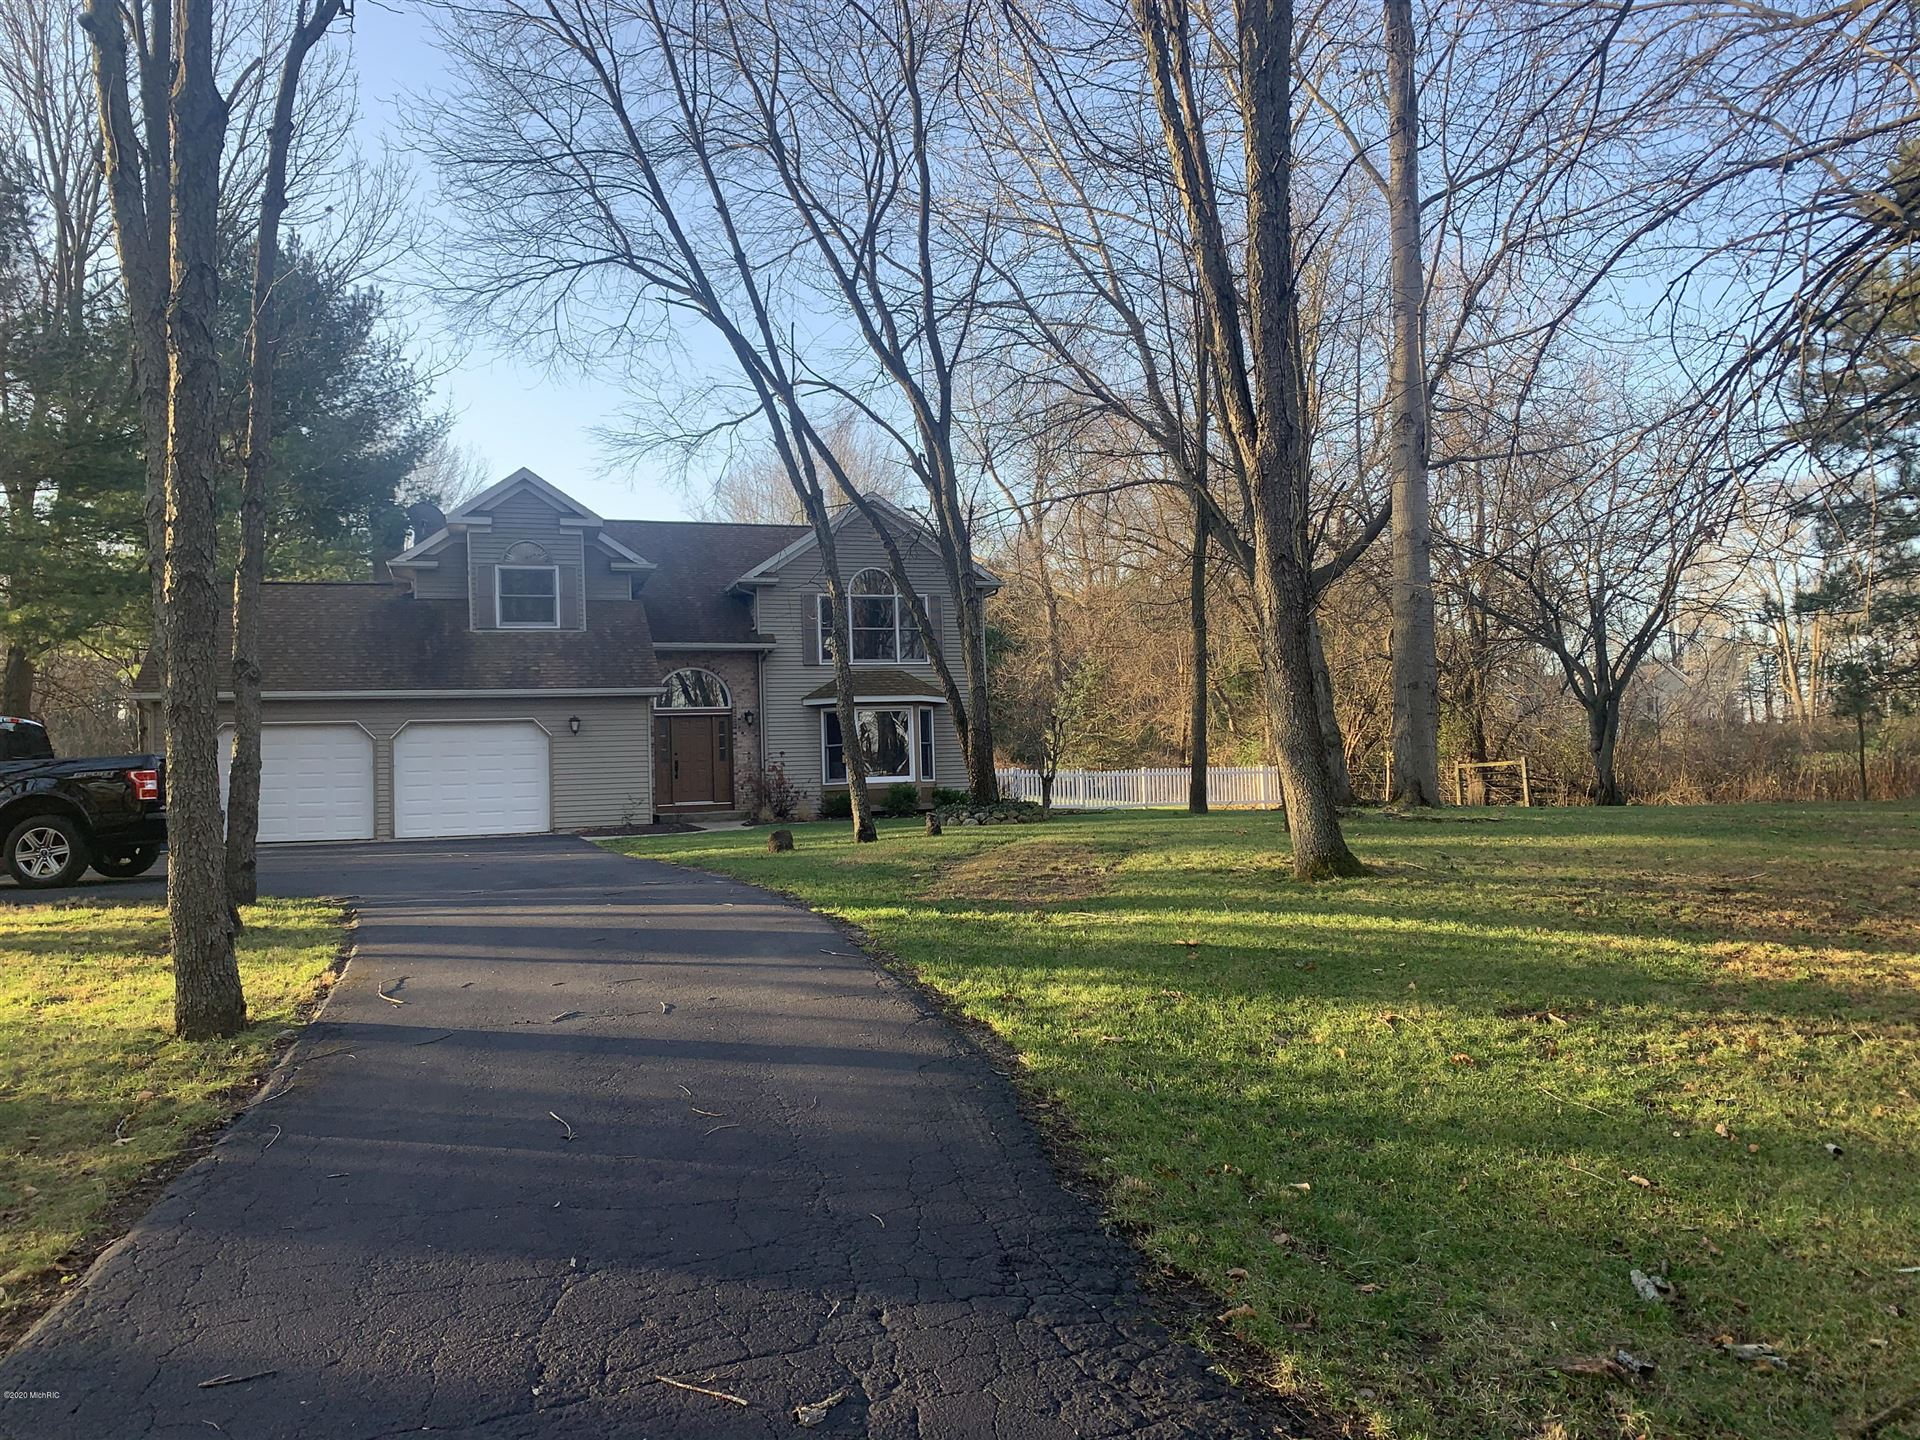 8604 E Ef Avenue, Richland, MI 49083 - MLS#: 21000043